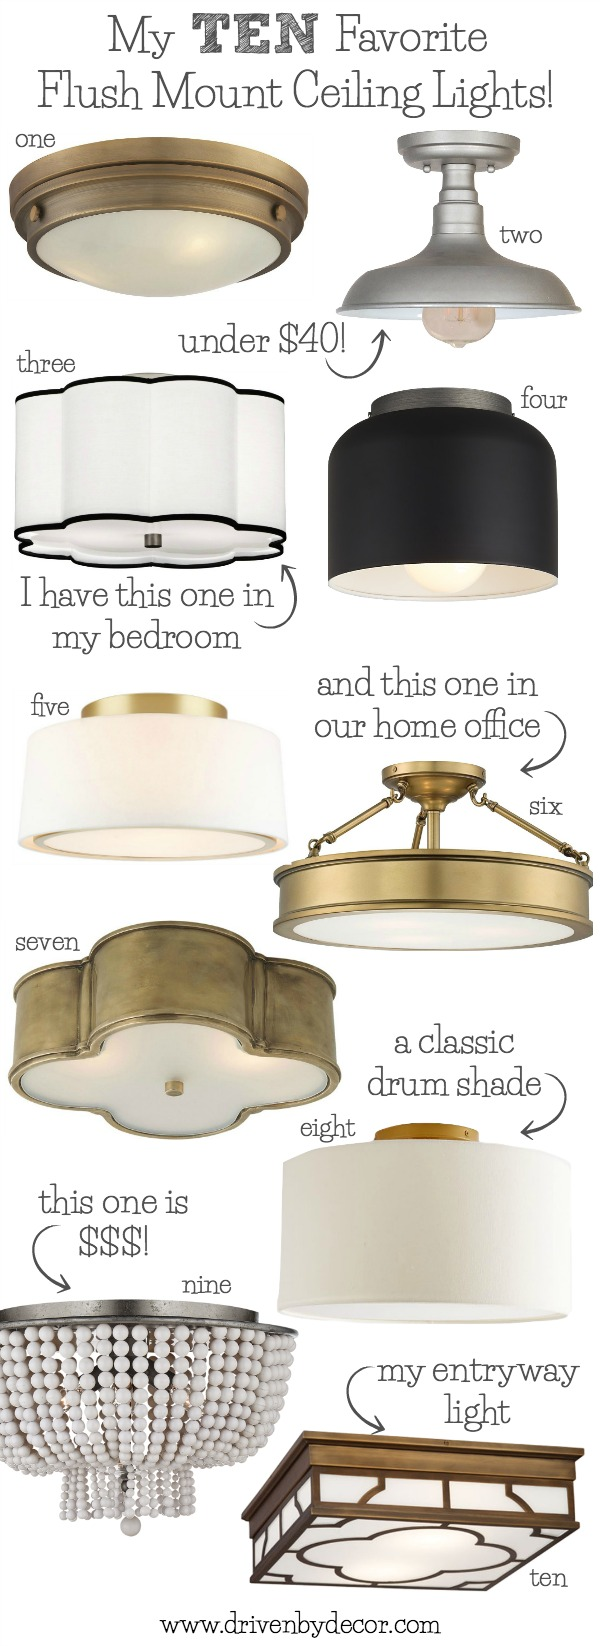 Best Flush Mount Ceiling Lighting - My 10 Faves From Inexpensive to ...